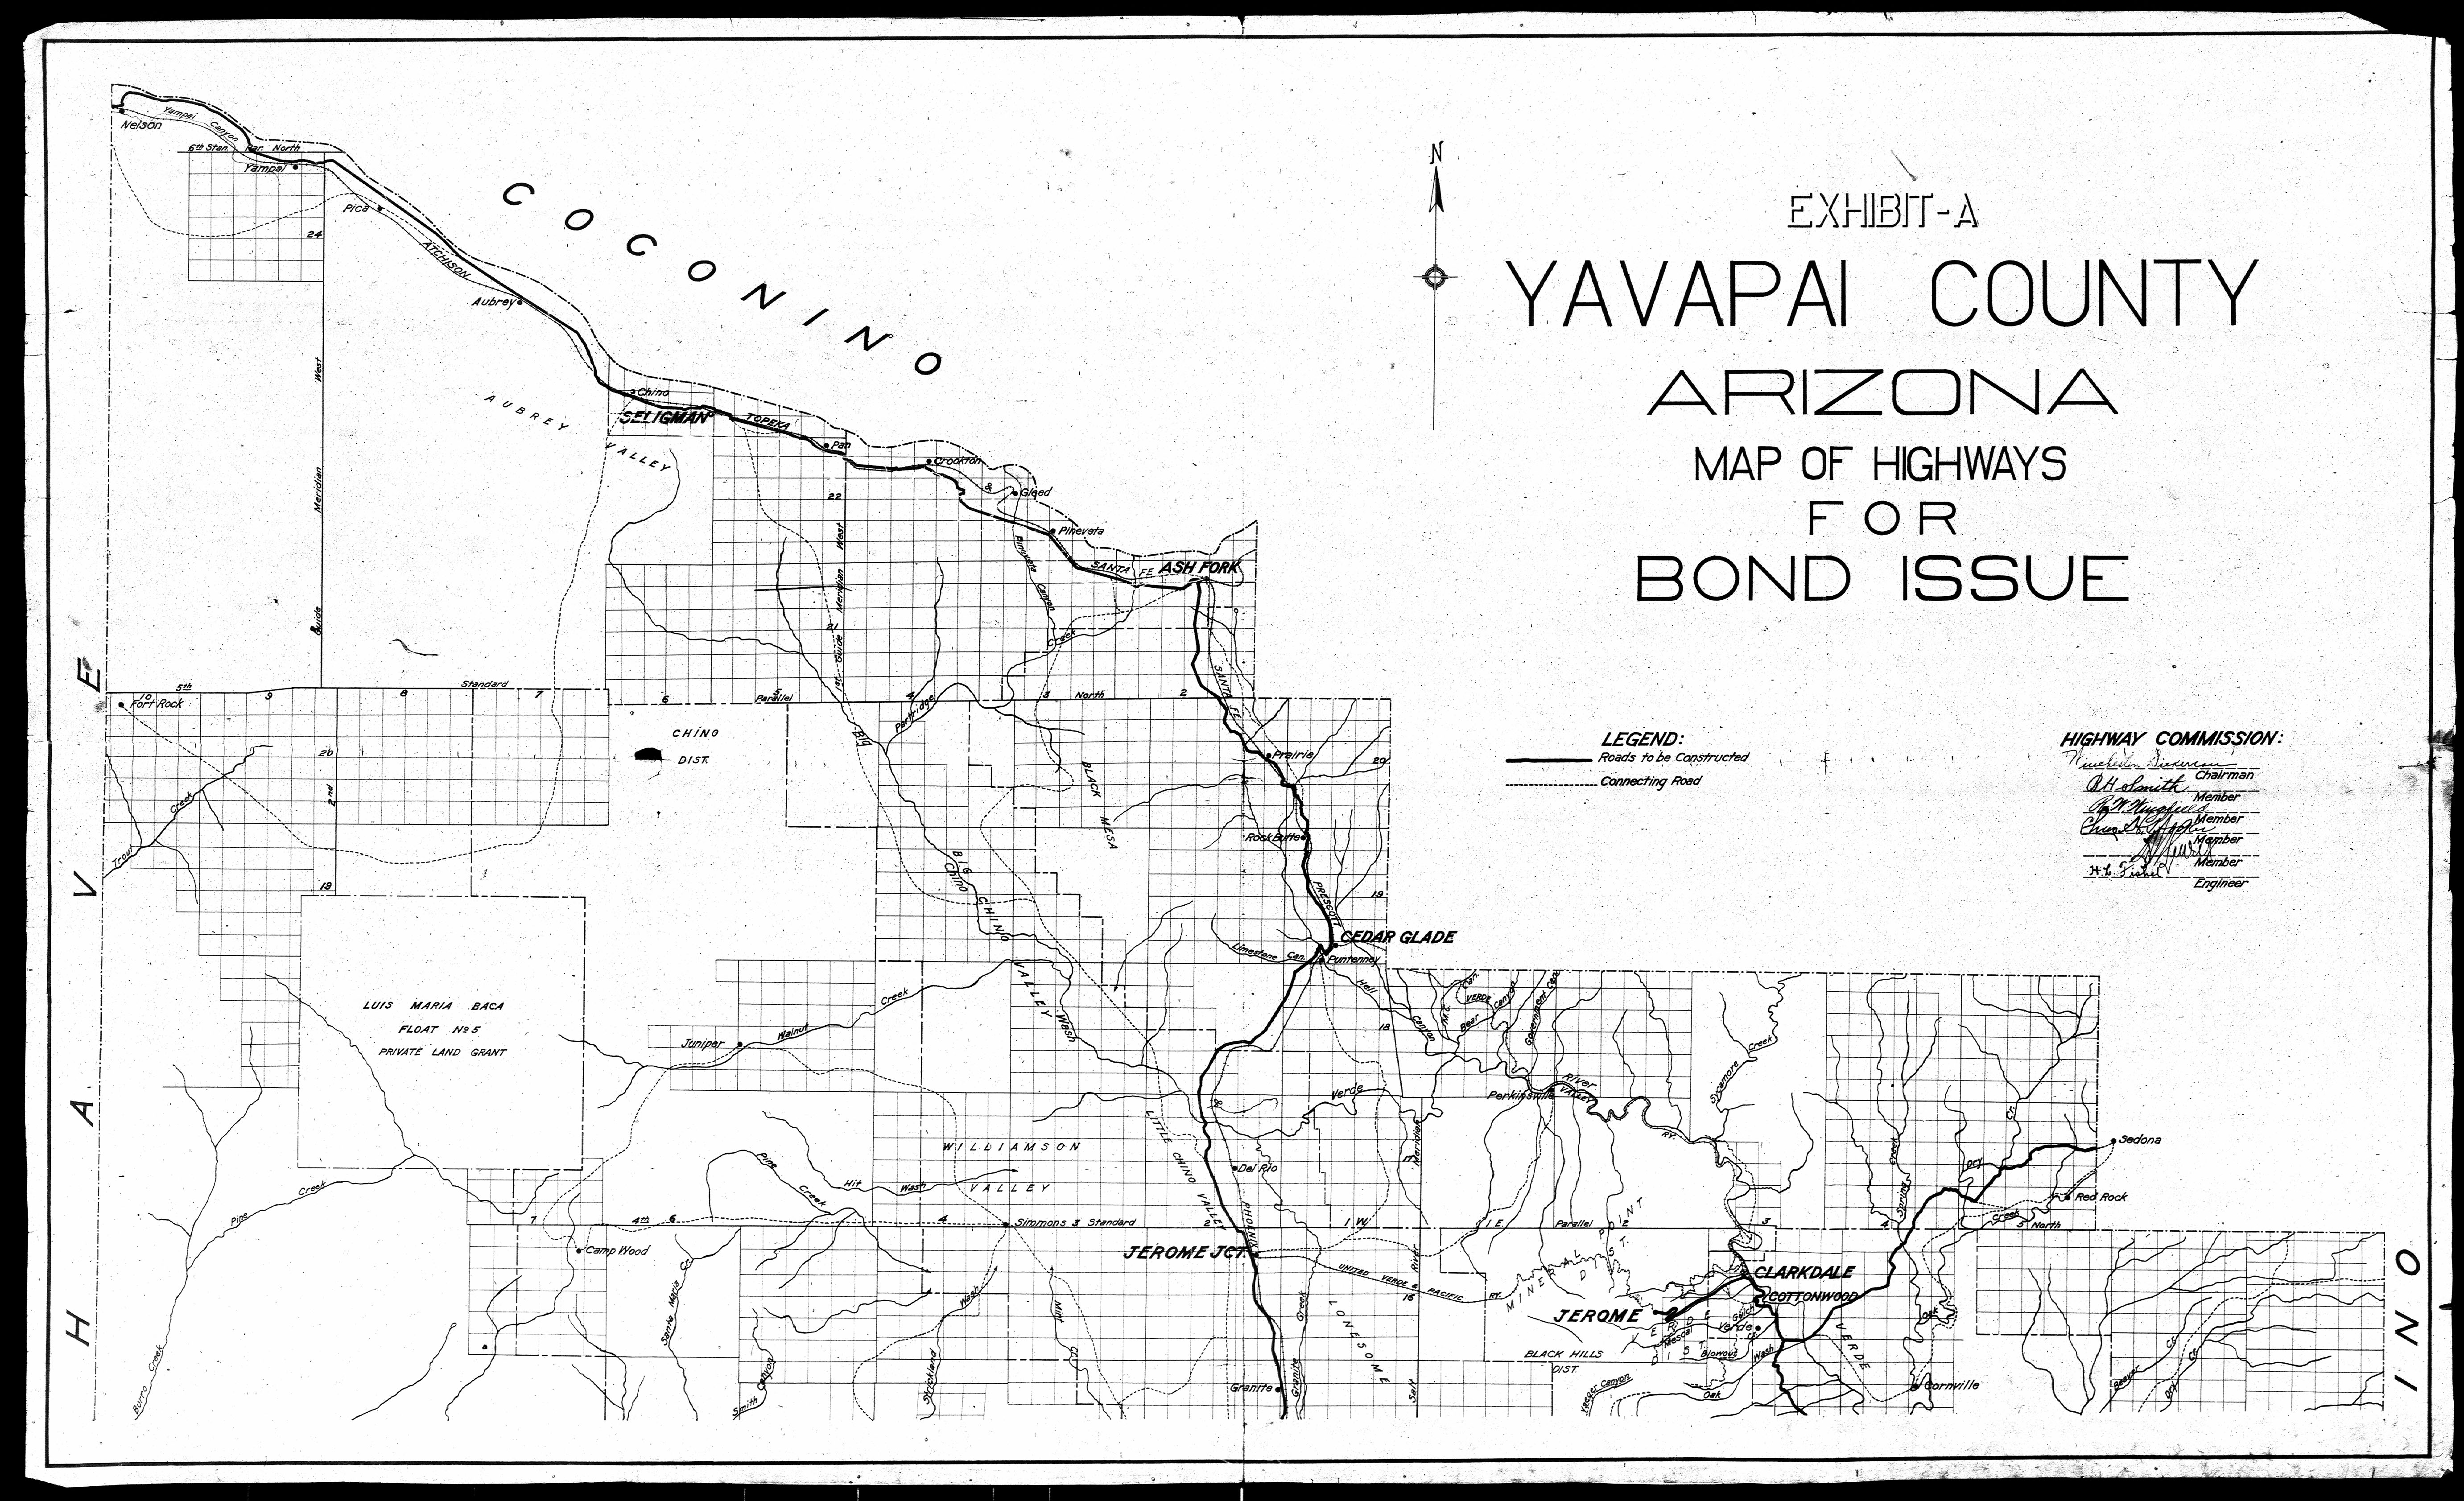 Arizona County maps along the NOTR on contra costa county road map, merrick county road map, prescott national forest road map, cottonwood county road map, creek county road map, kiowa county road map, pawnee county road map, clayton county road map, churchill county road map, san luis obispo county road map, san joaquin county road map, knox county road map, alameda county road map, covington county road map, kingman road map, mohave county road map, adams county road map, yavapai plat maps, boise county road map, briggs road map,